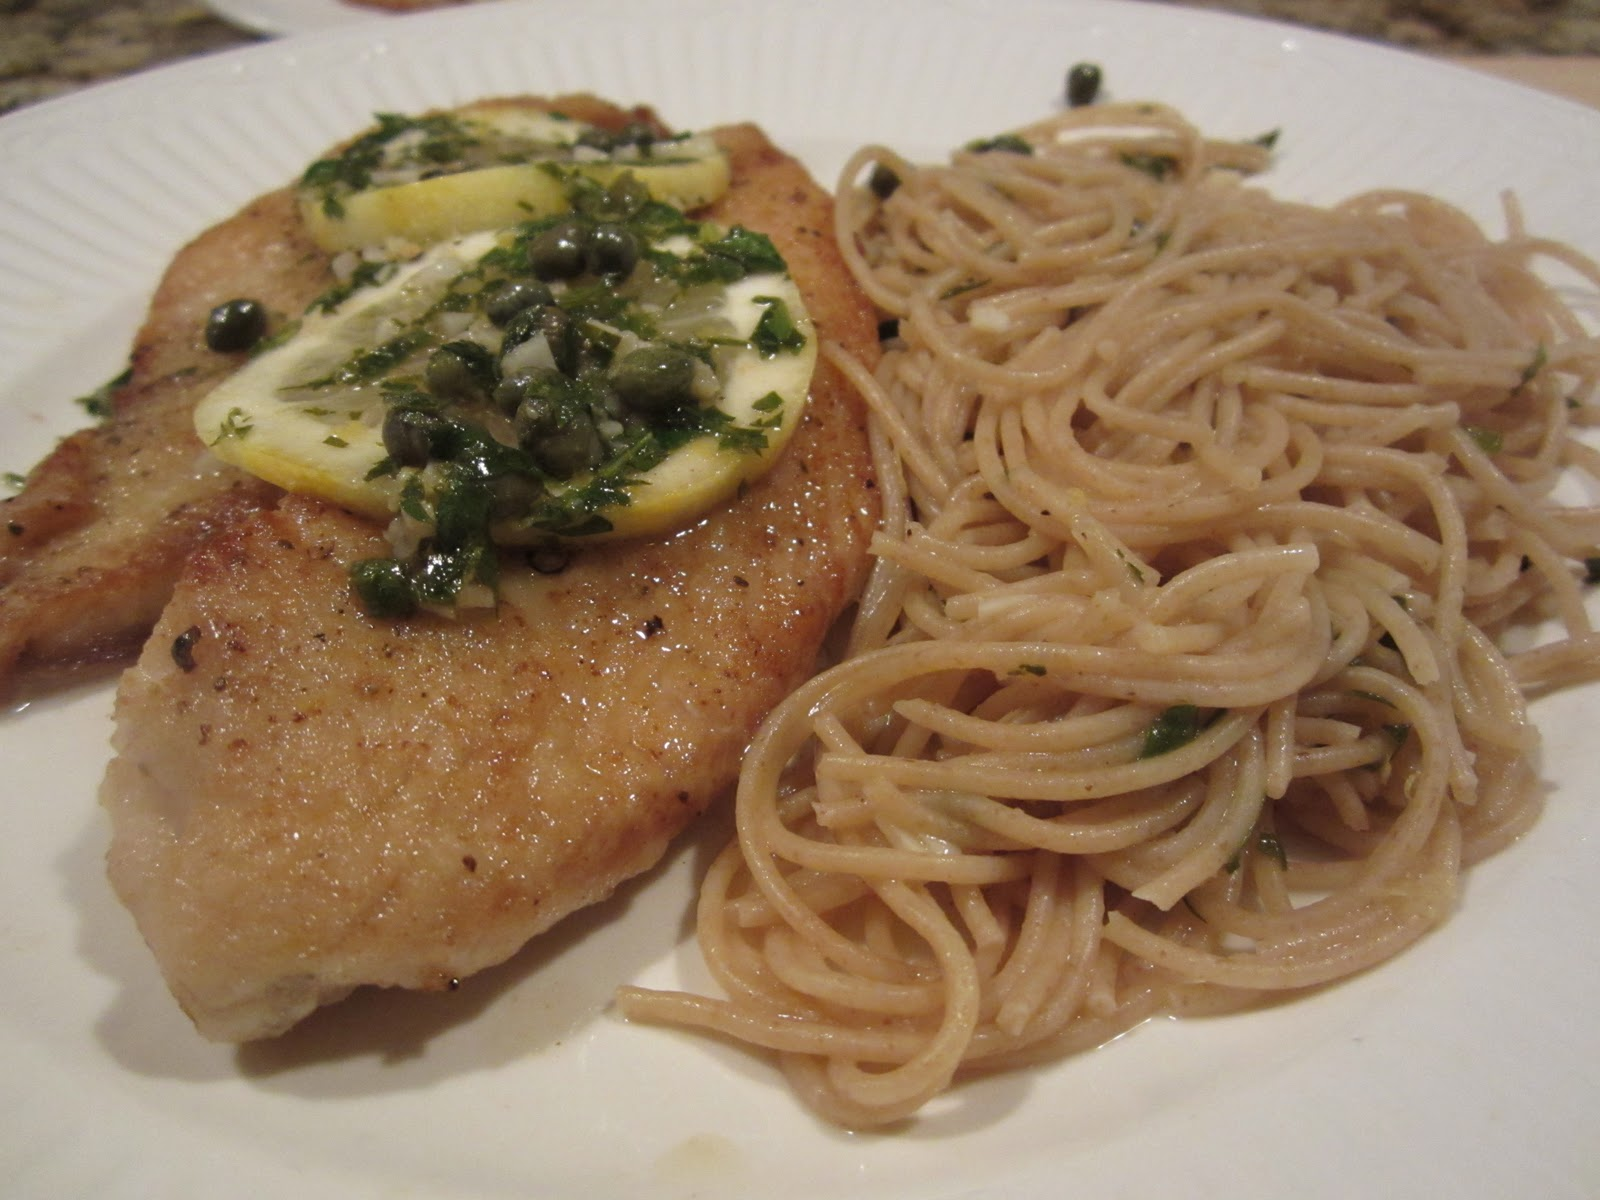 Piccata-style fish with pasta